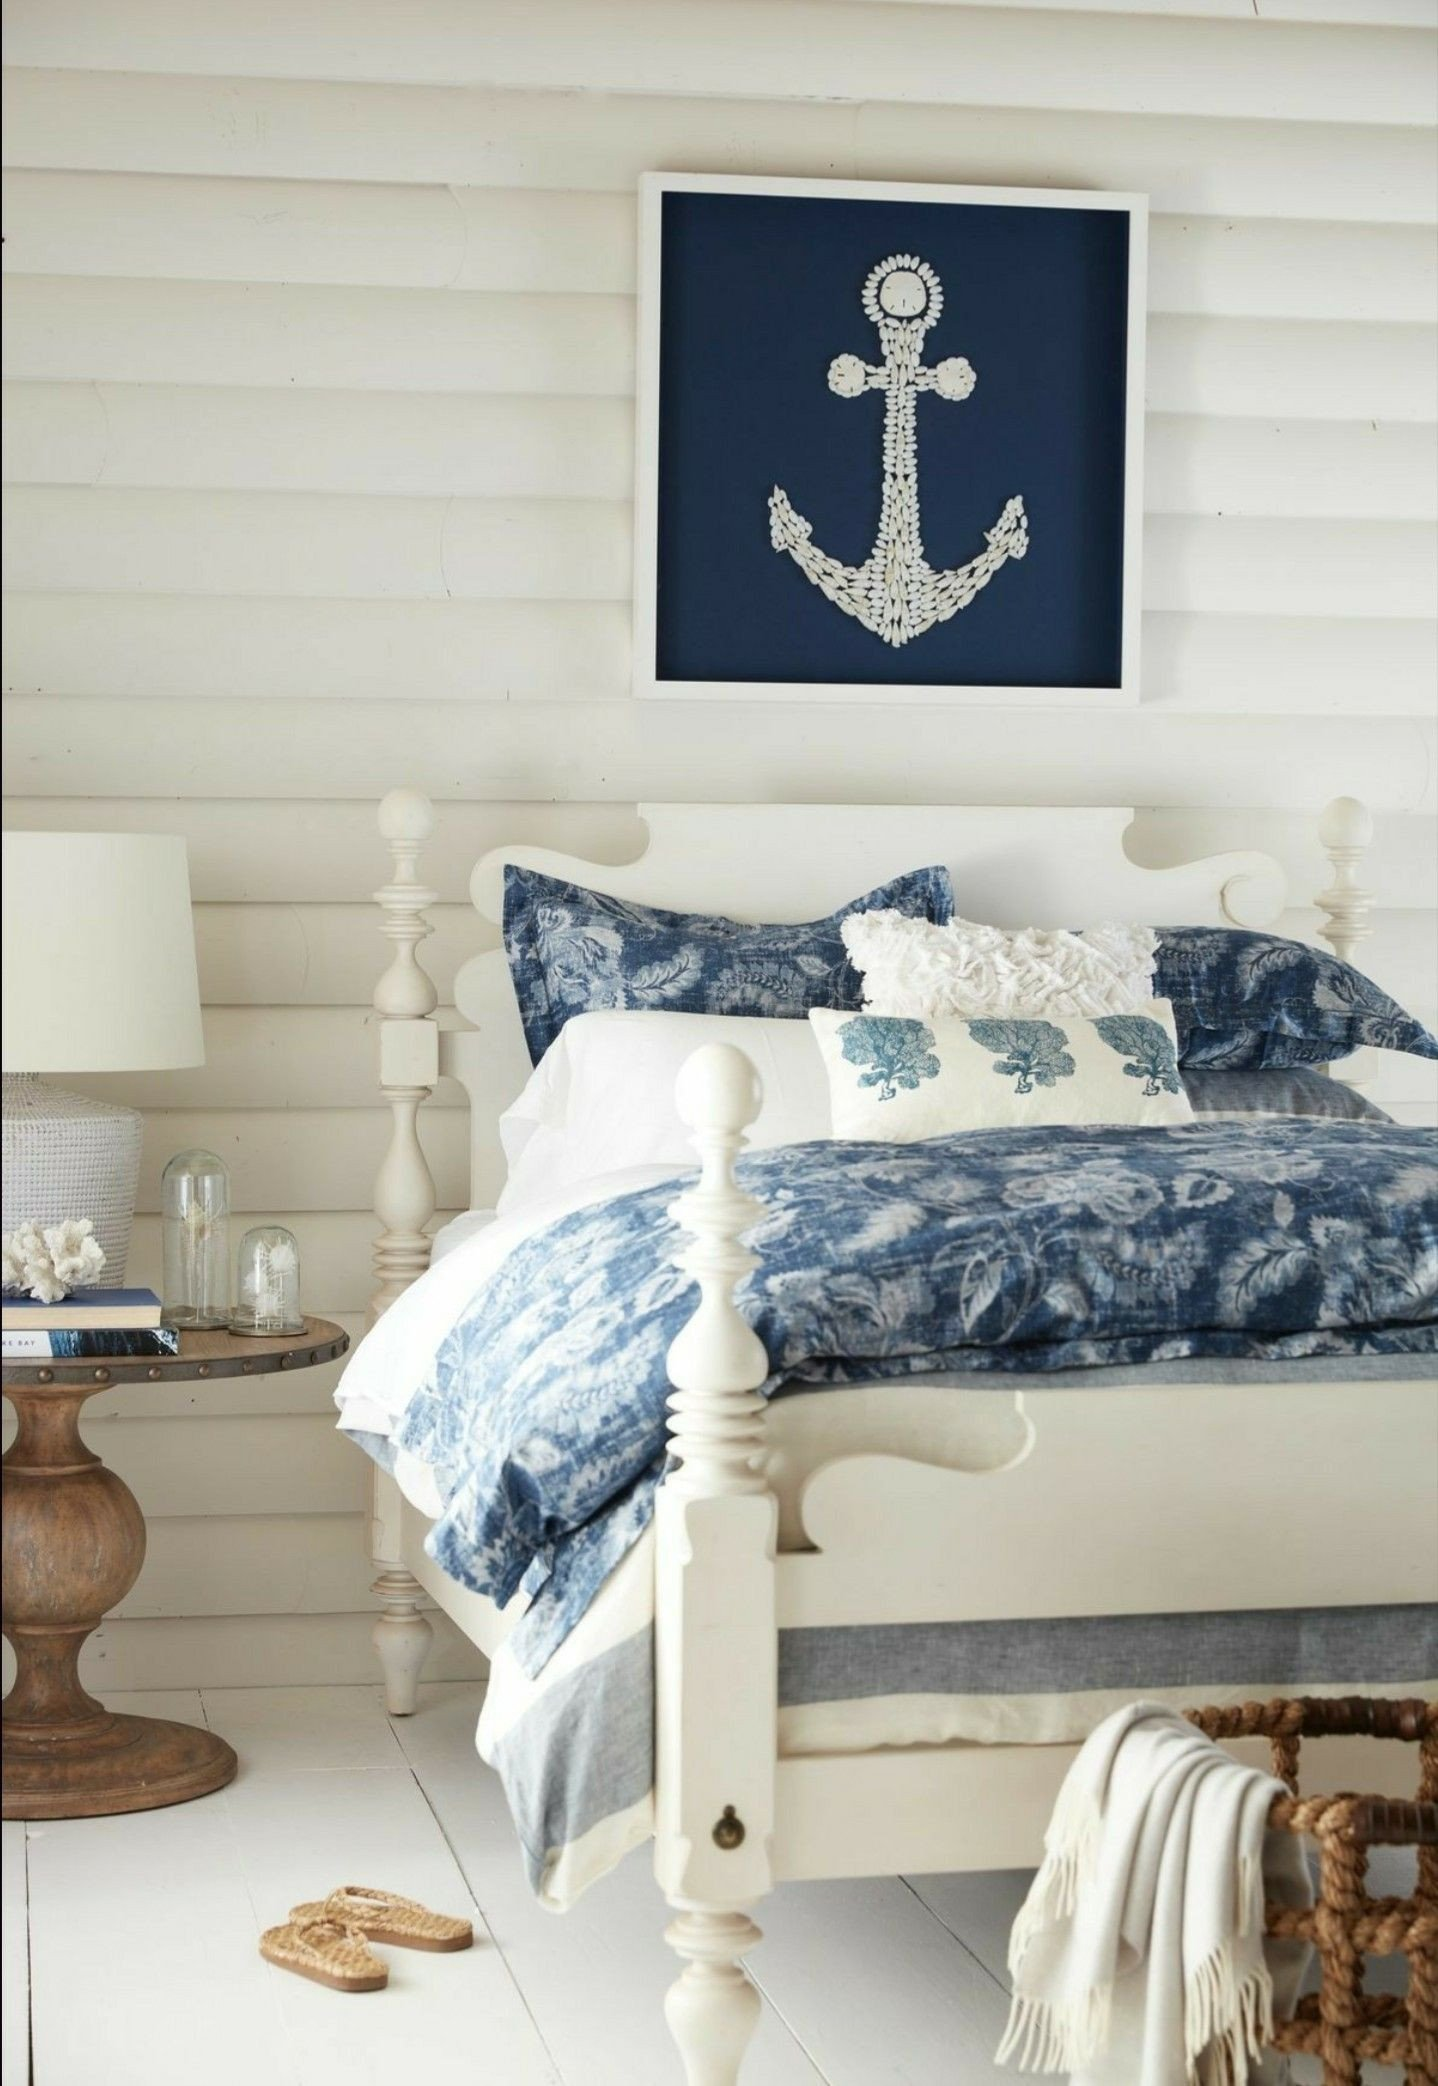 Beach Style Bedroom Furniture Inspirational Coastal White Planked Bedroom Love the White Wood Headboard